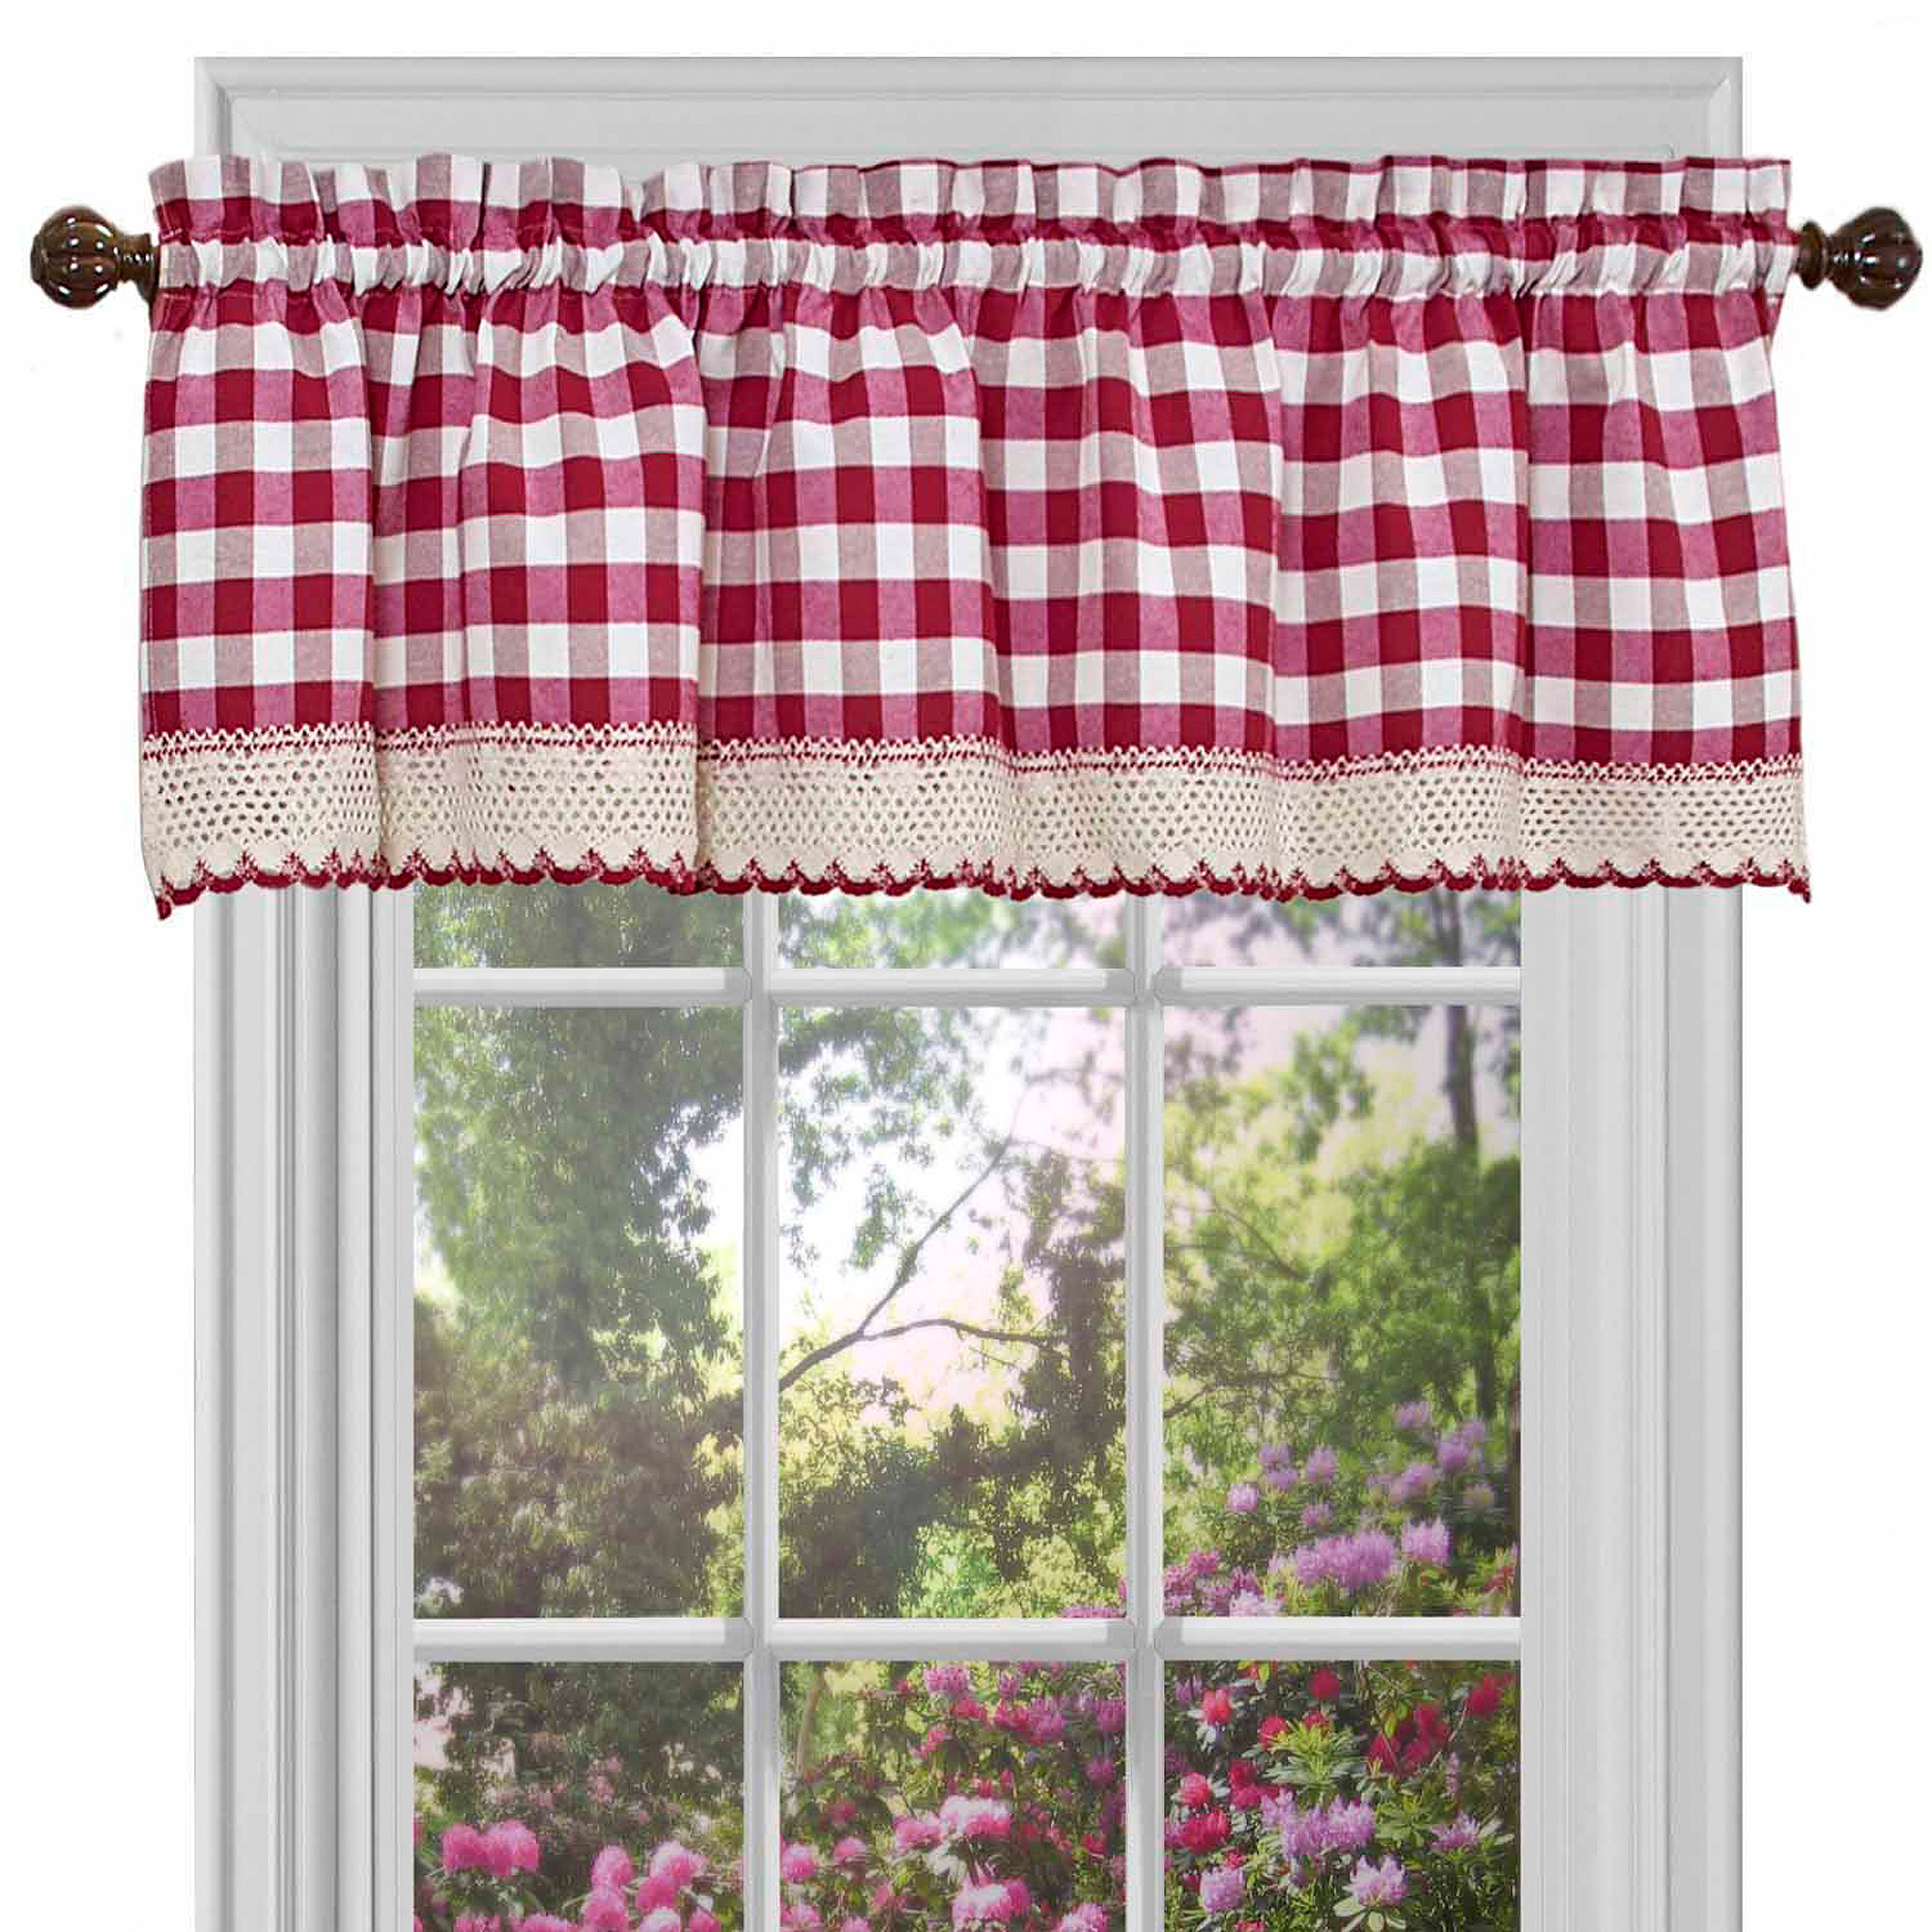 Buffalo Check Window Curtain Valance - 58x14